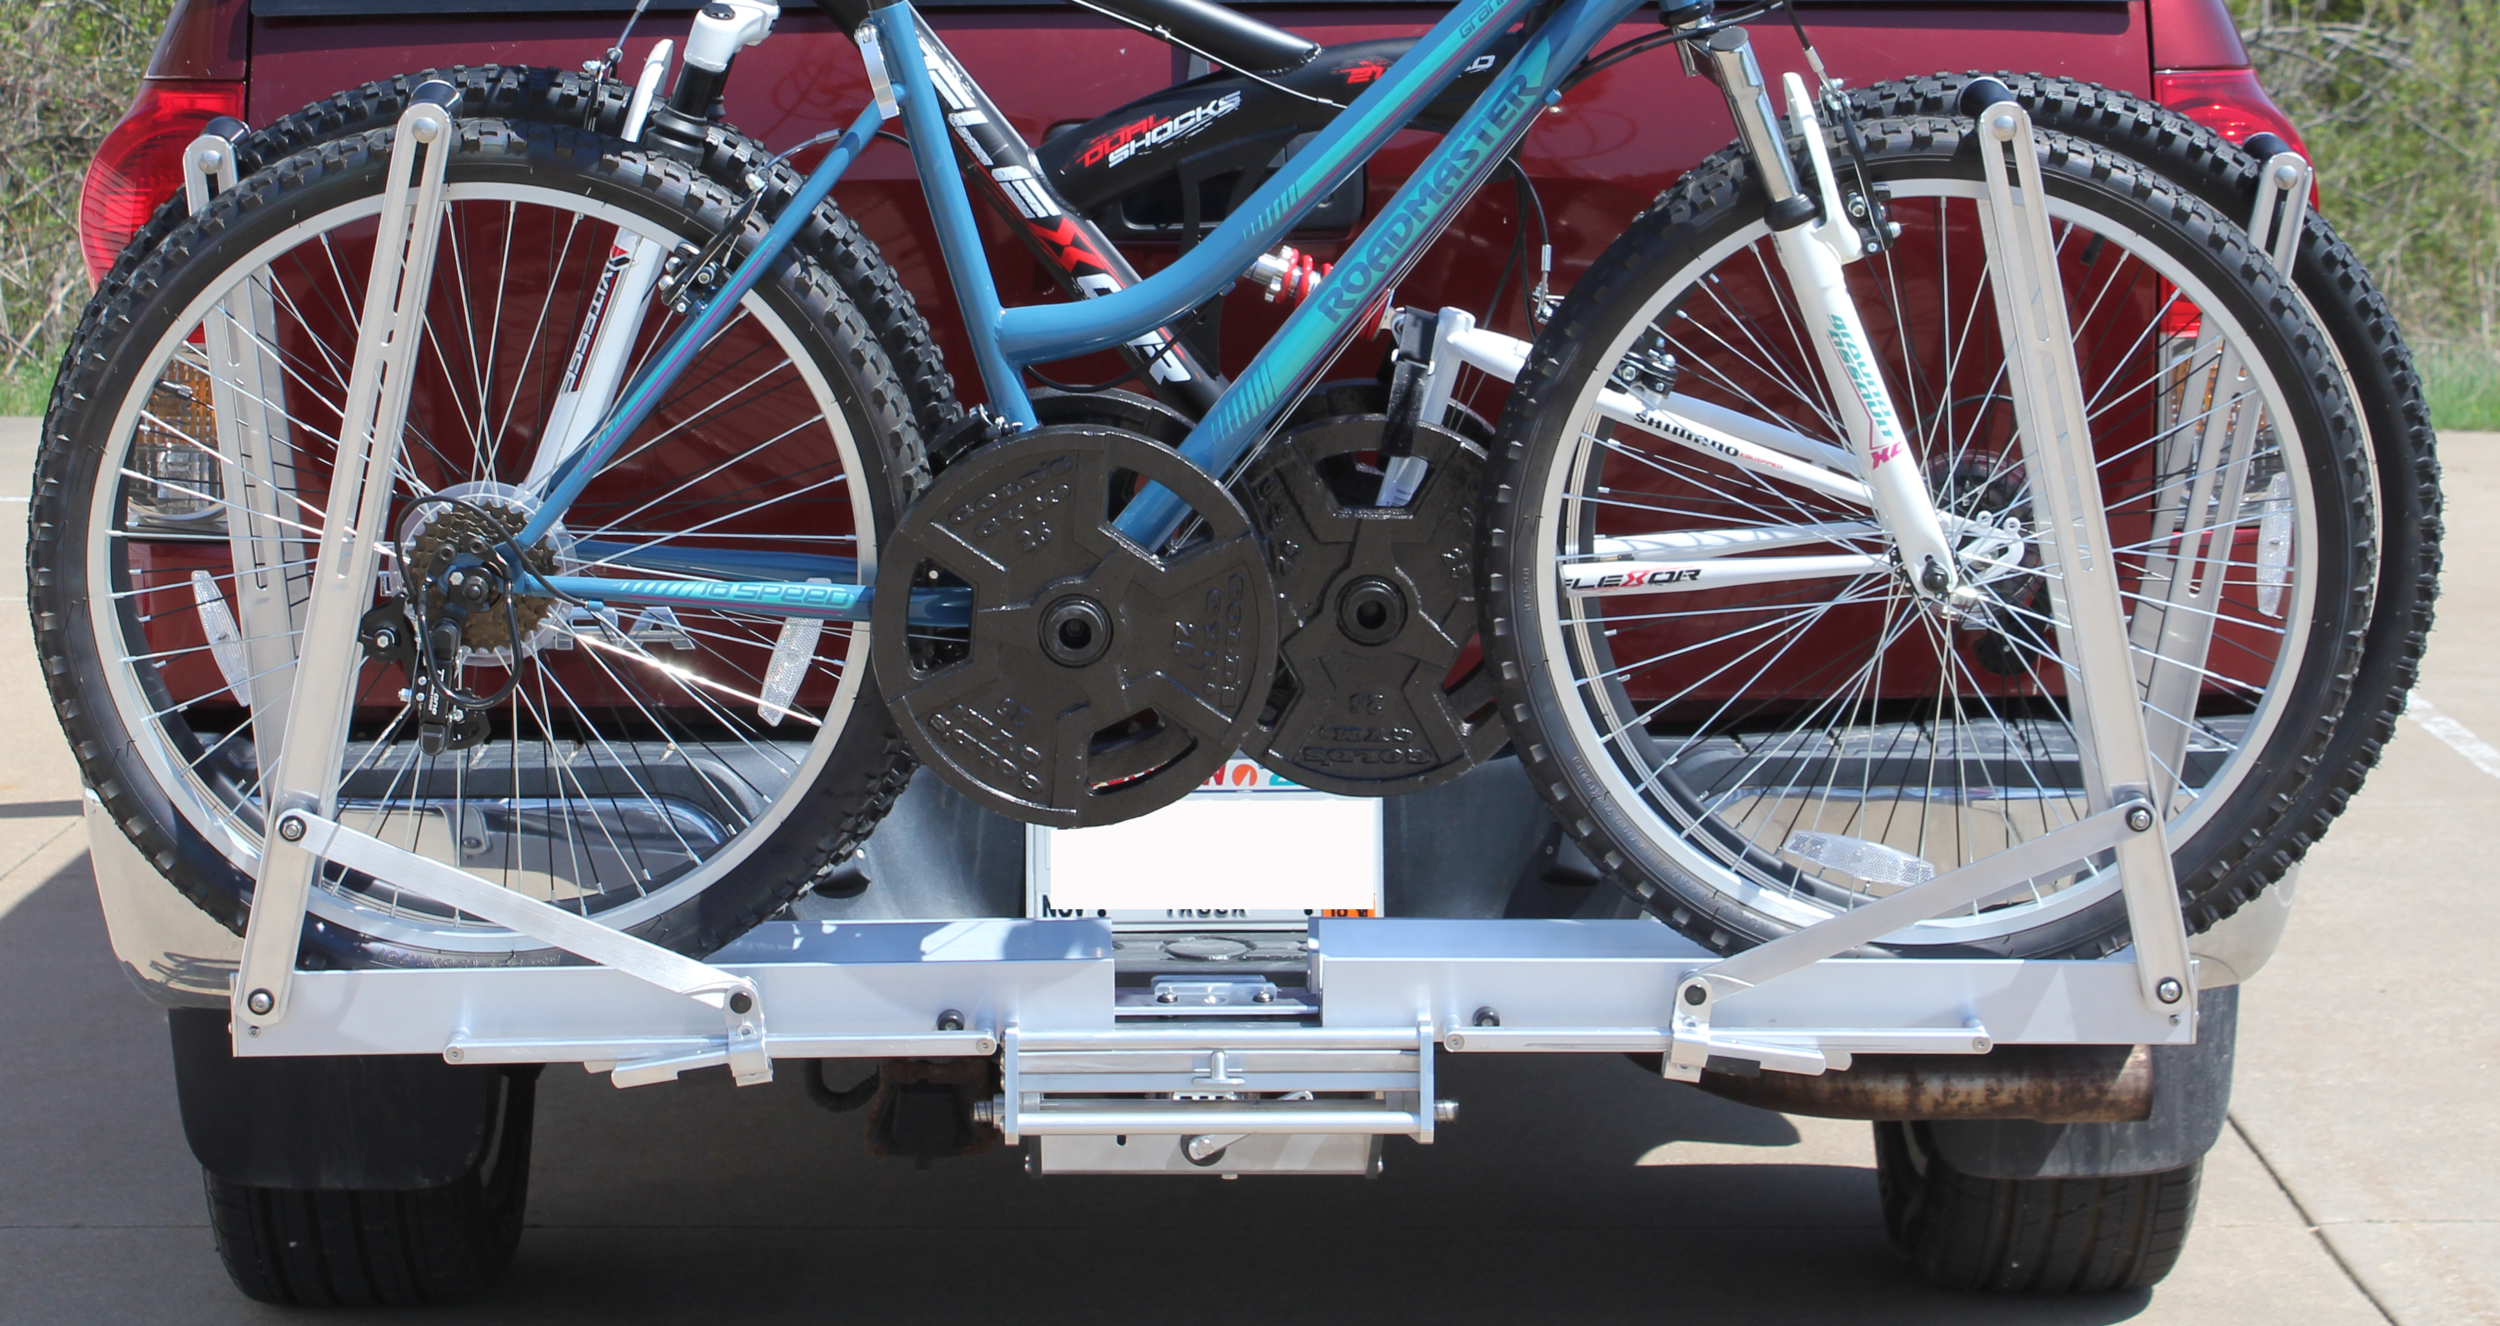 Quik Rack Mach 2 -  Shown with 50 lbs. of weights added per bike for testing. Each bike weights over 80 lbs. The new tray and mounting design allows for much heavier bikes like electric bikes up to 100 lbs. Our original Quik-Rack had a bike weight limit of 50 lbs.